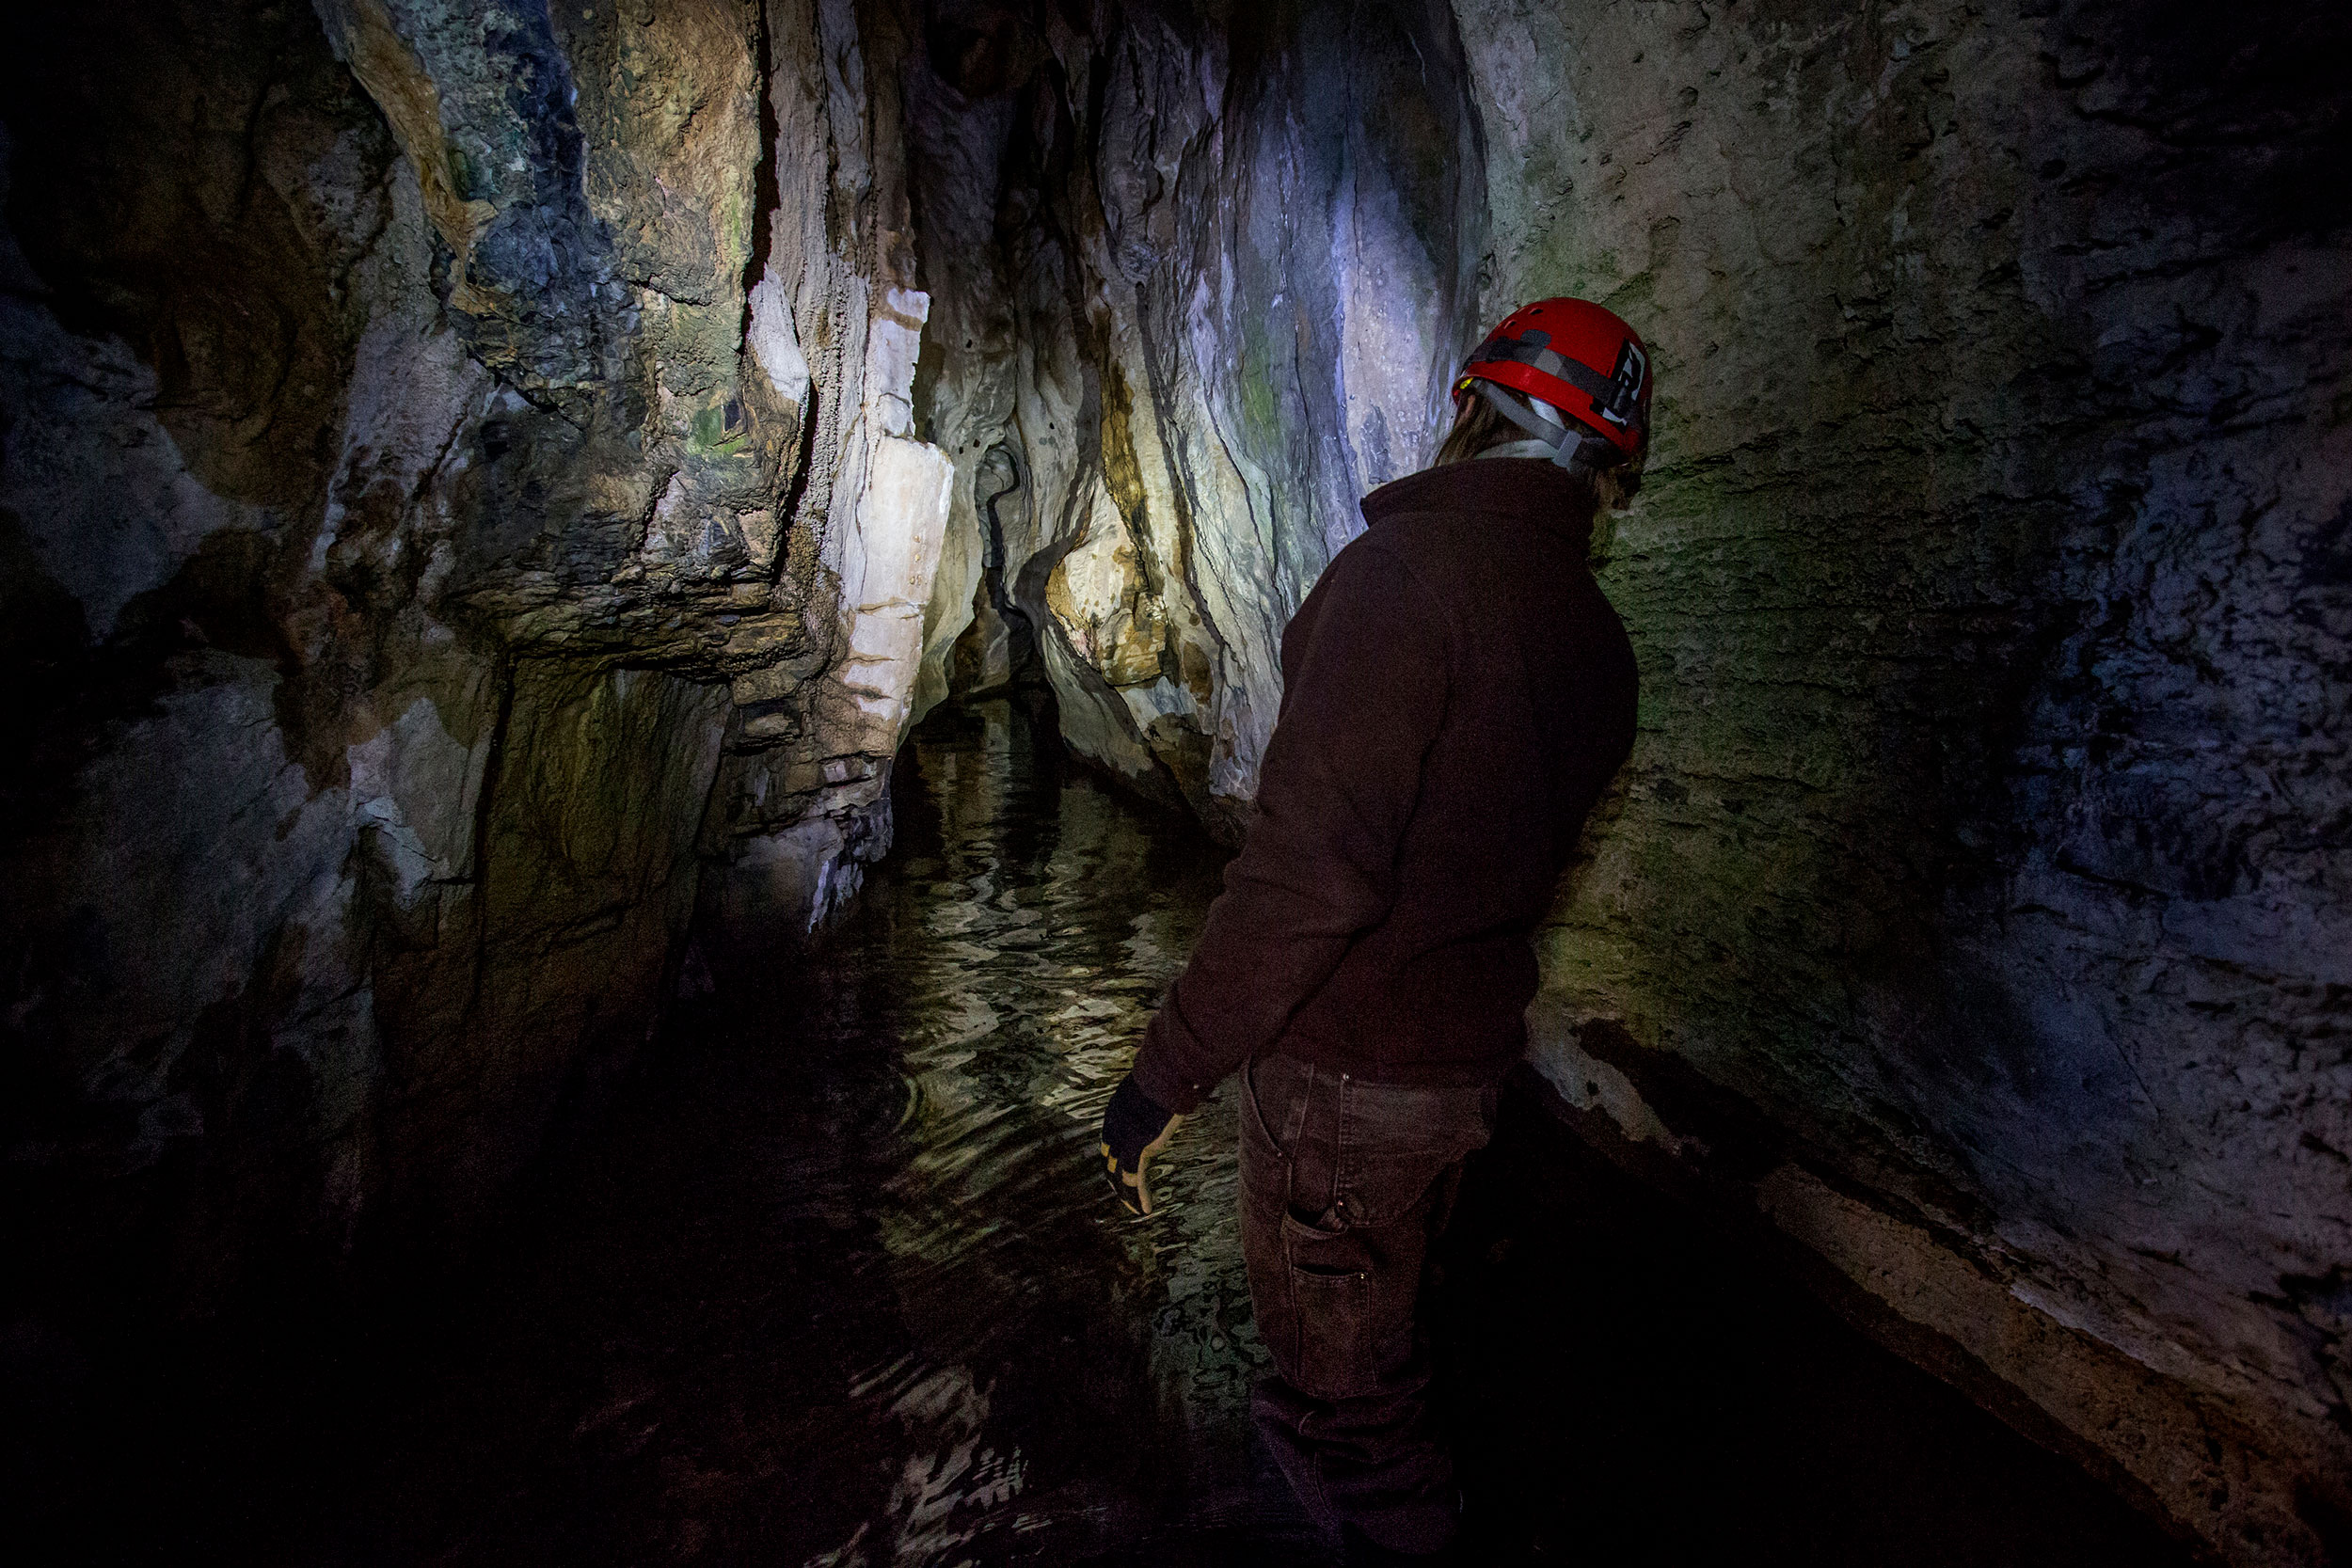 Wildlife biologist Adam Brewerton checks the water level in Logan Cave on Wednesday, Feb. 15. The mile-long cave was dry at the start of February, but by the middle of the month, a heavy stream of water was pouring out of the cave due to warm weather and melting snow.